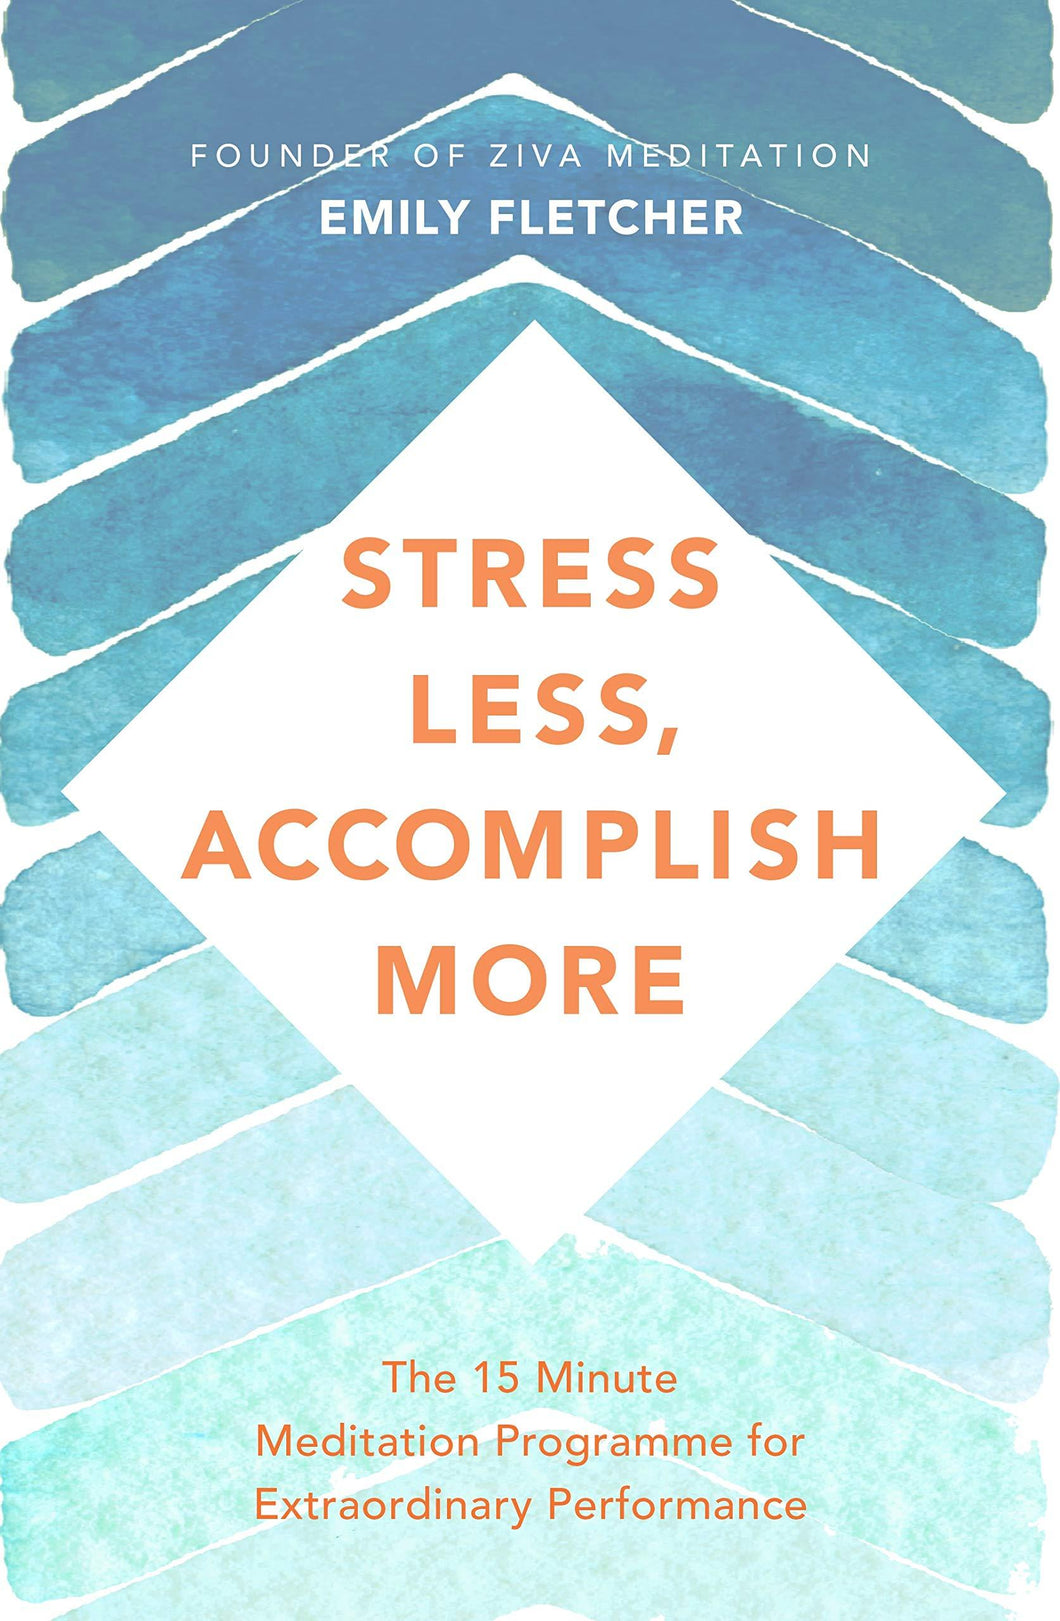 Stress Less, Accomplish More: The 15-Minute Meditation Programme for Extraordinary Performance (Book by Emily Fletcher) - Books - Spiffy